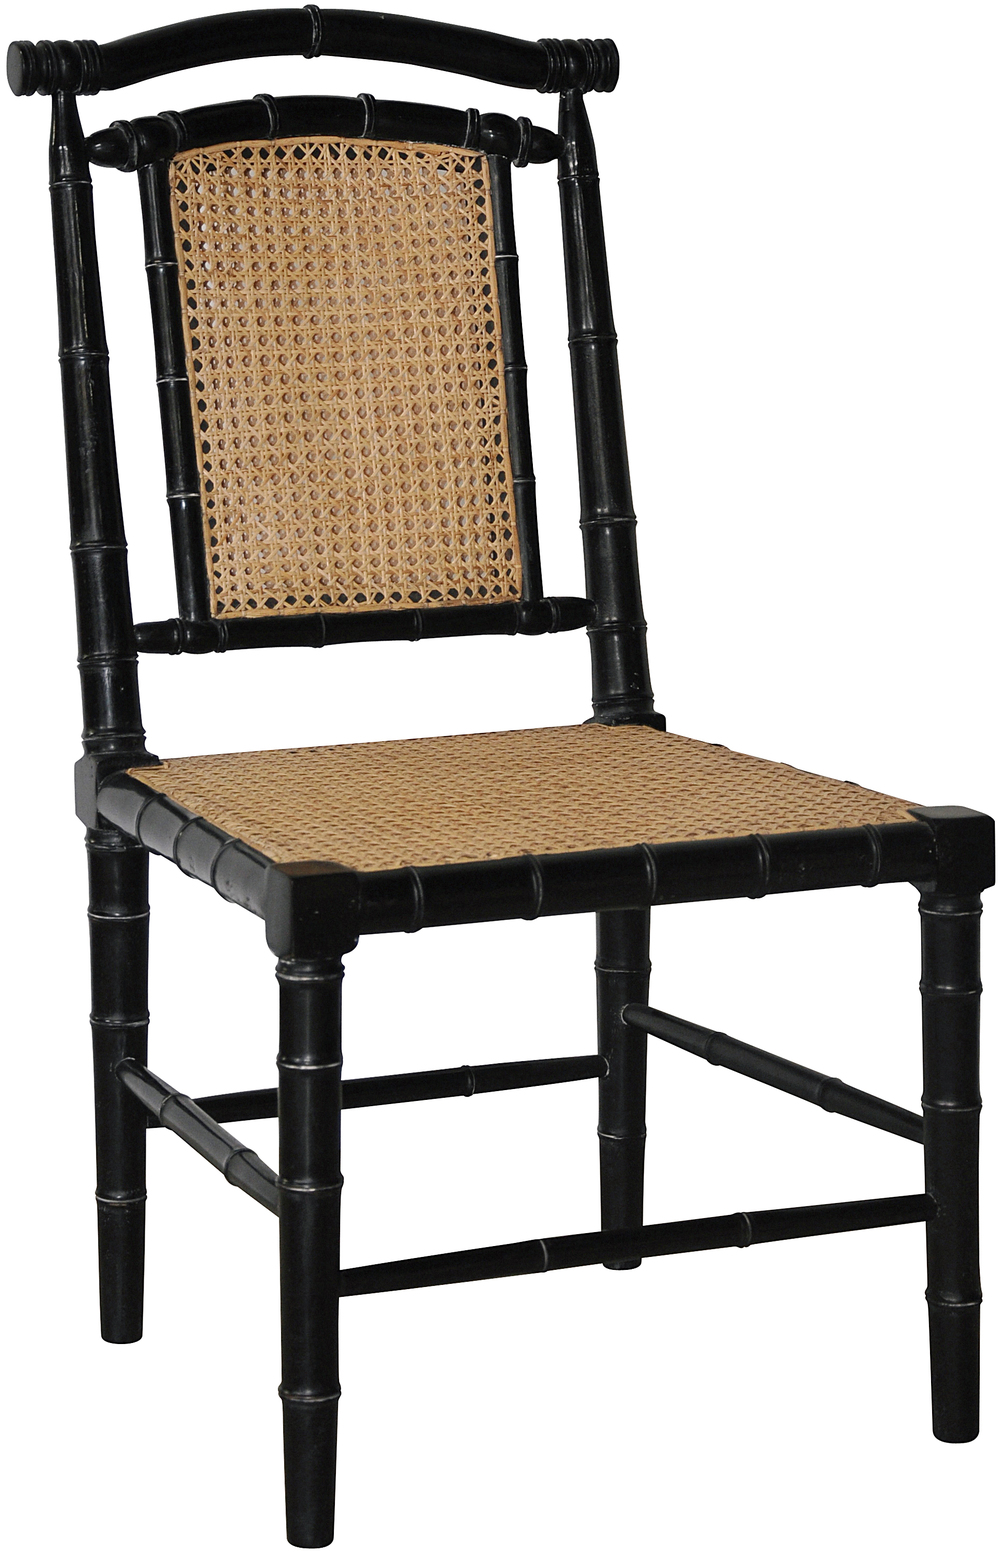 NOIR TRADING, INC - Colonial Bamboo Dining Chair